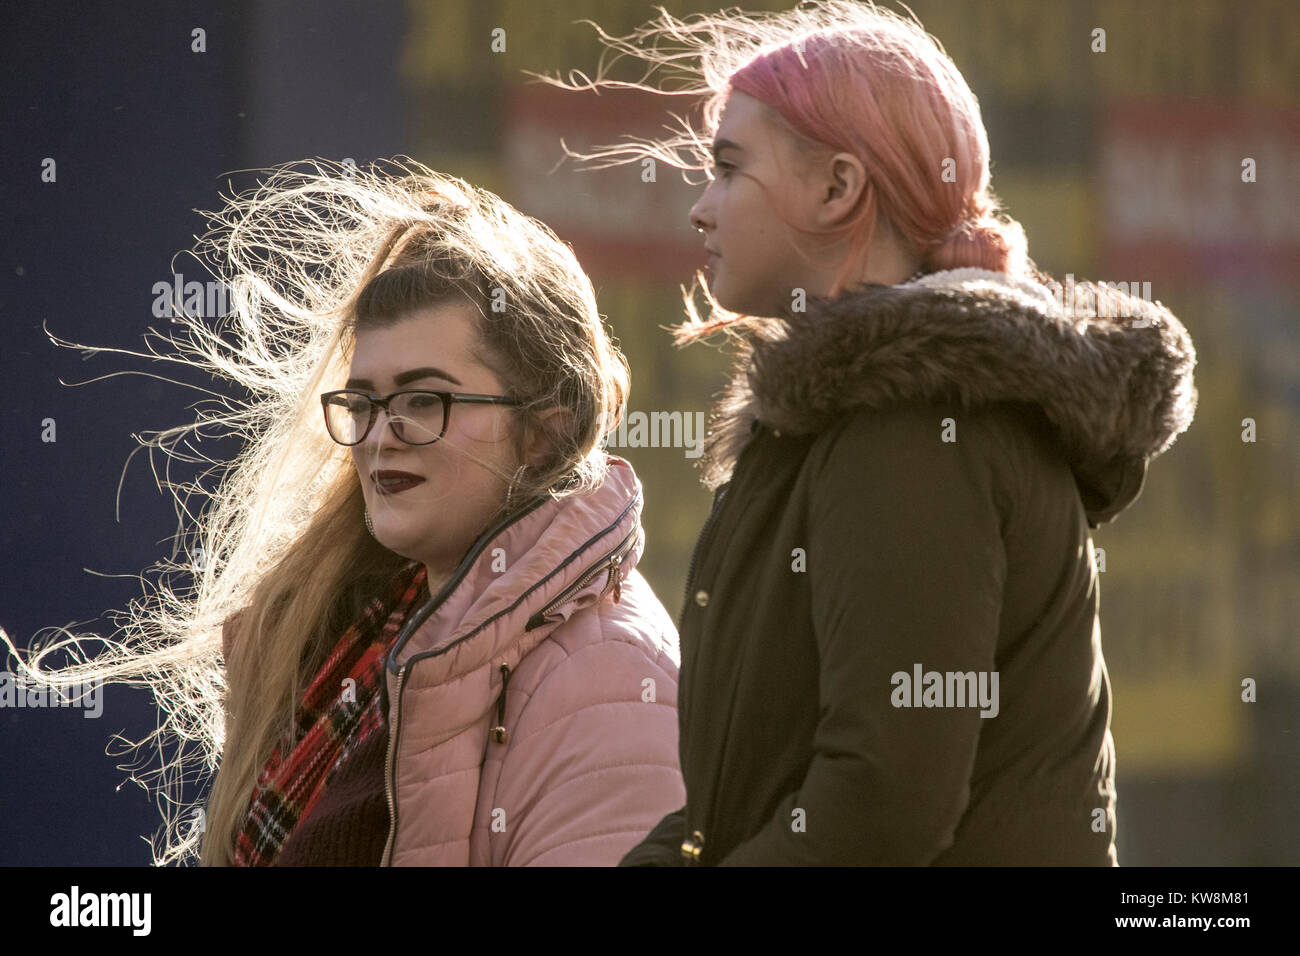 breezy outside wind blown hair windswept windy blowing mess messy weather season bad day winter wintry girls womens - Stock Image